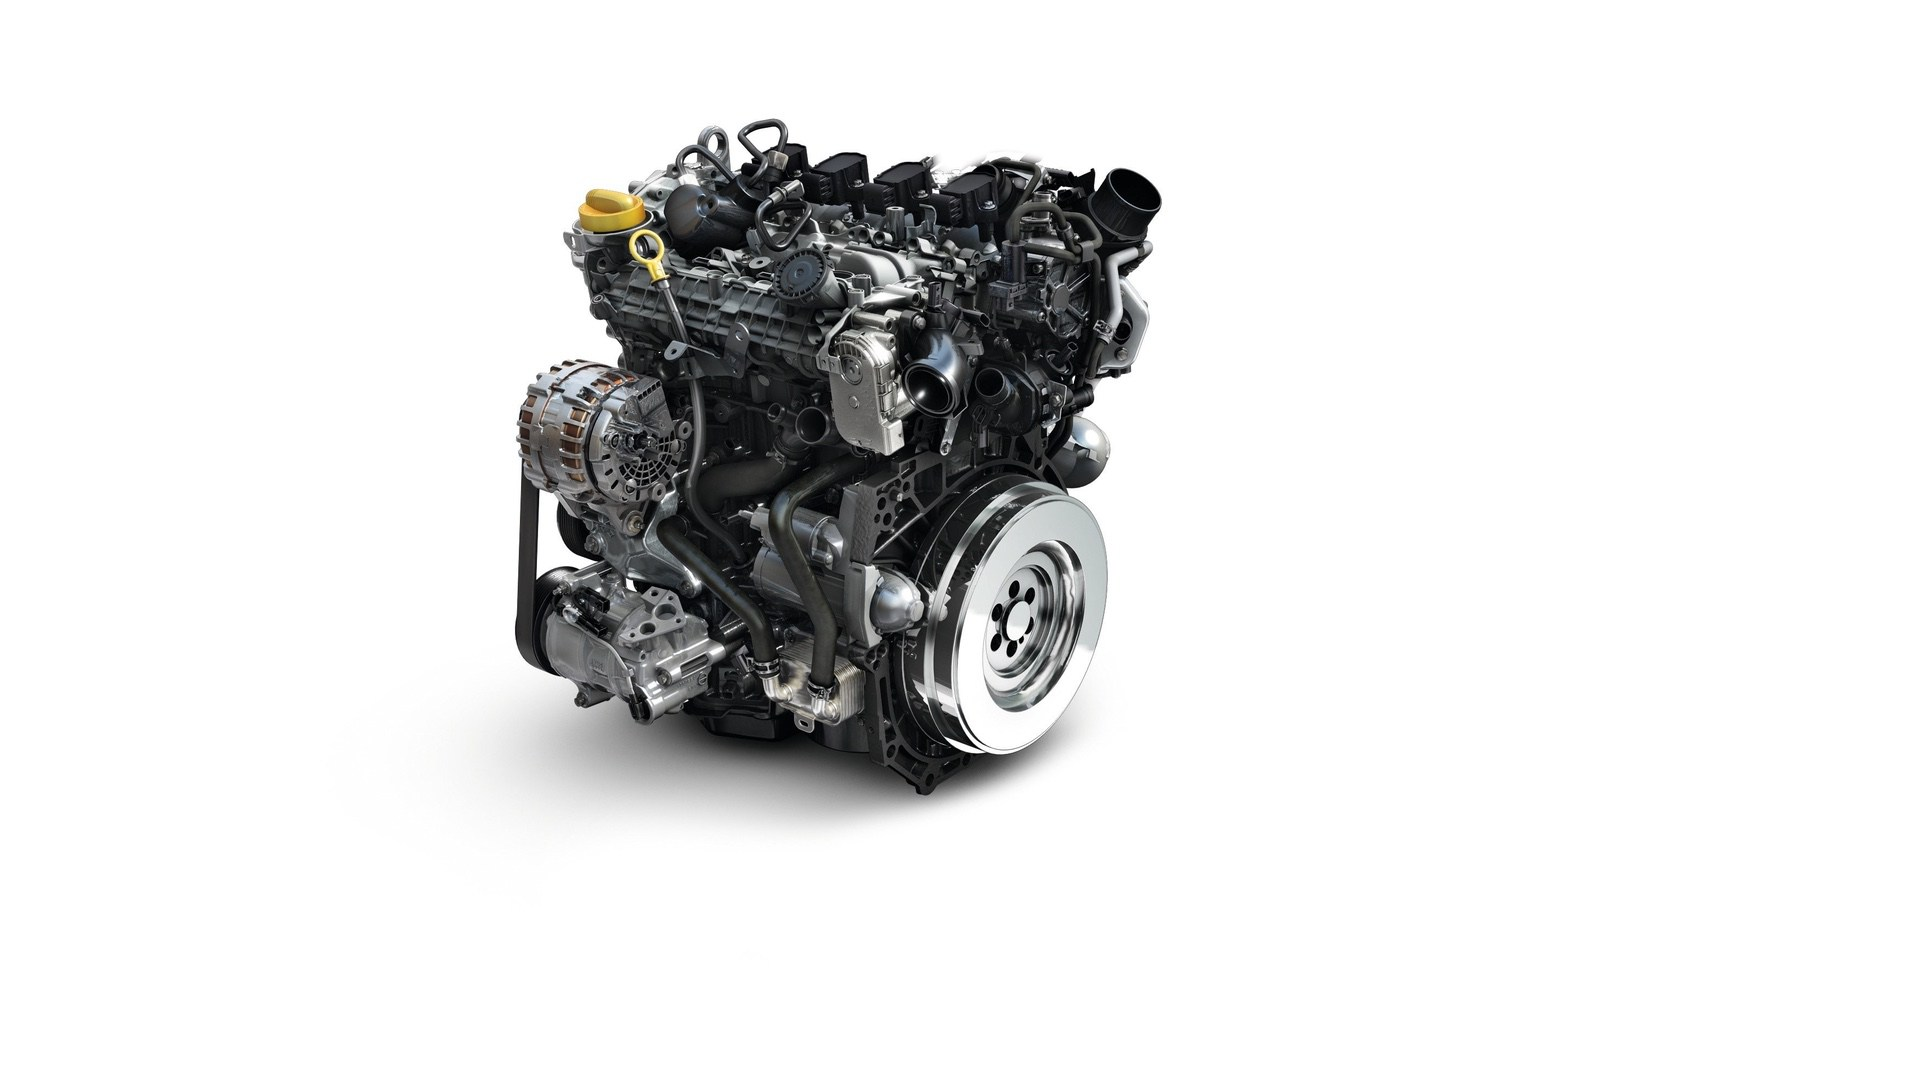 2017 - Energy TCe 115 to 160 engine